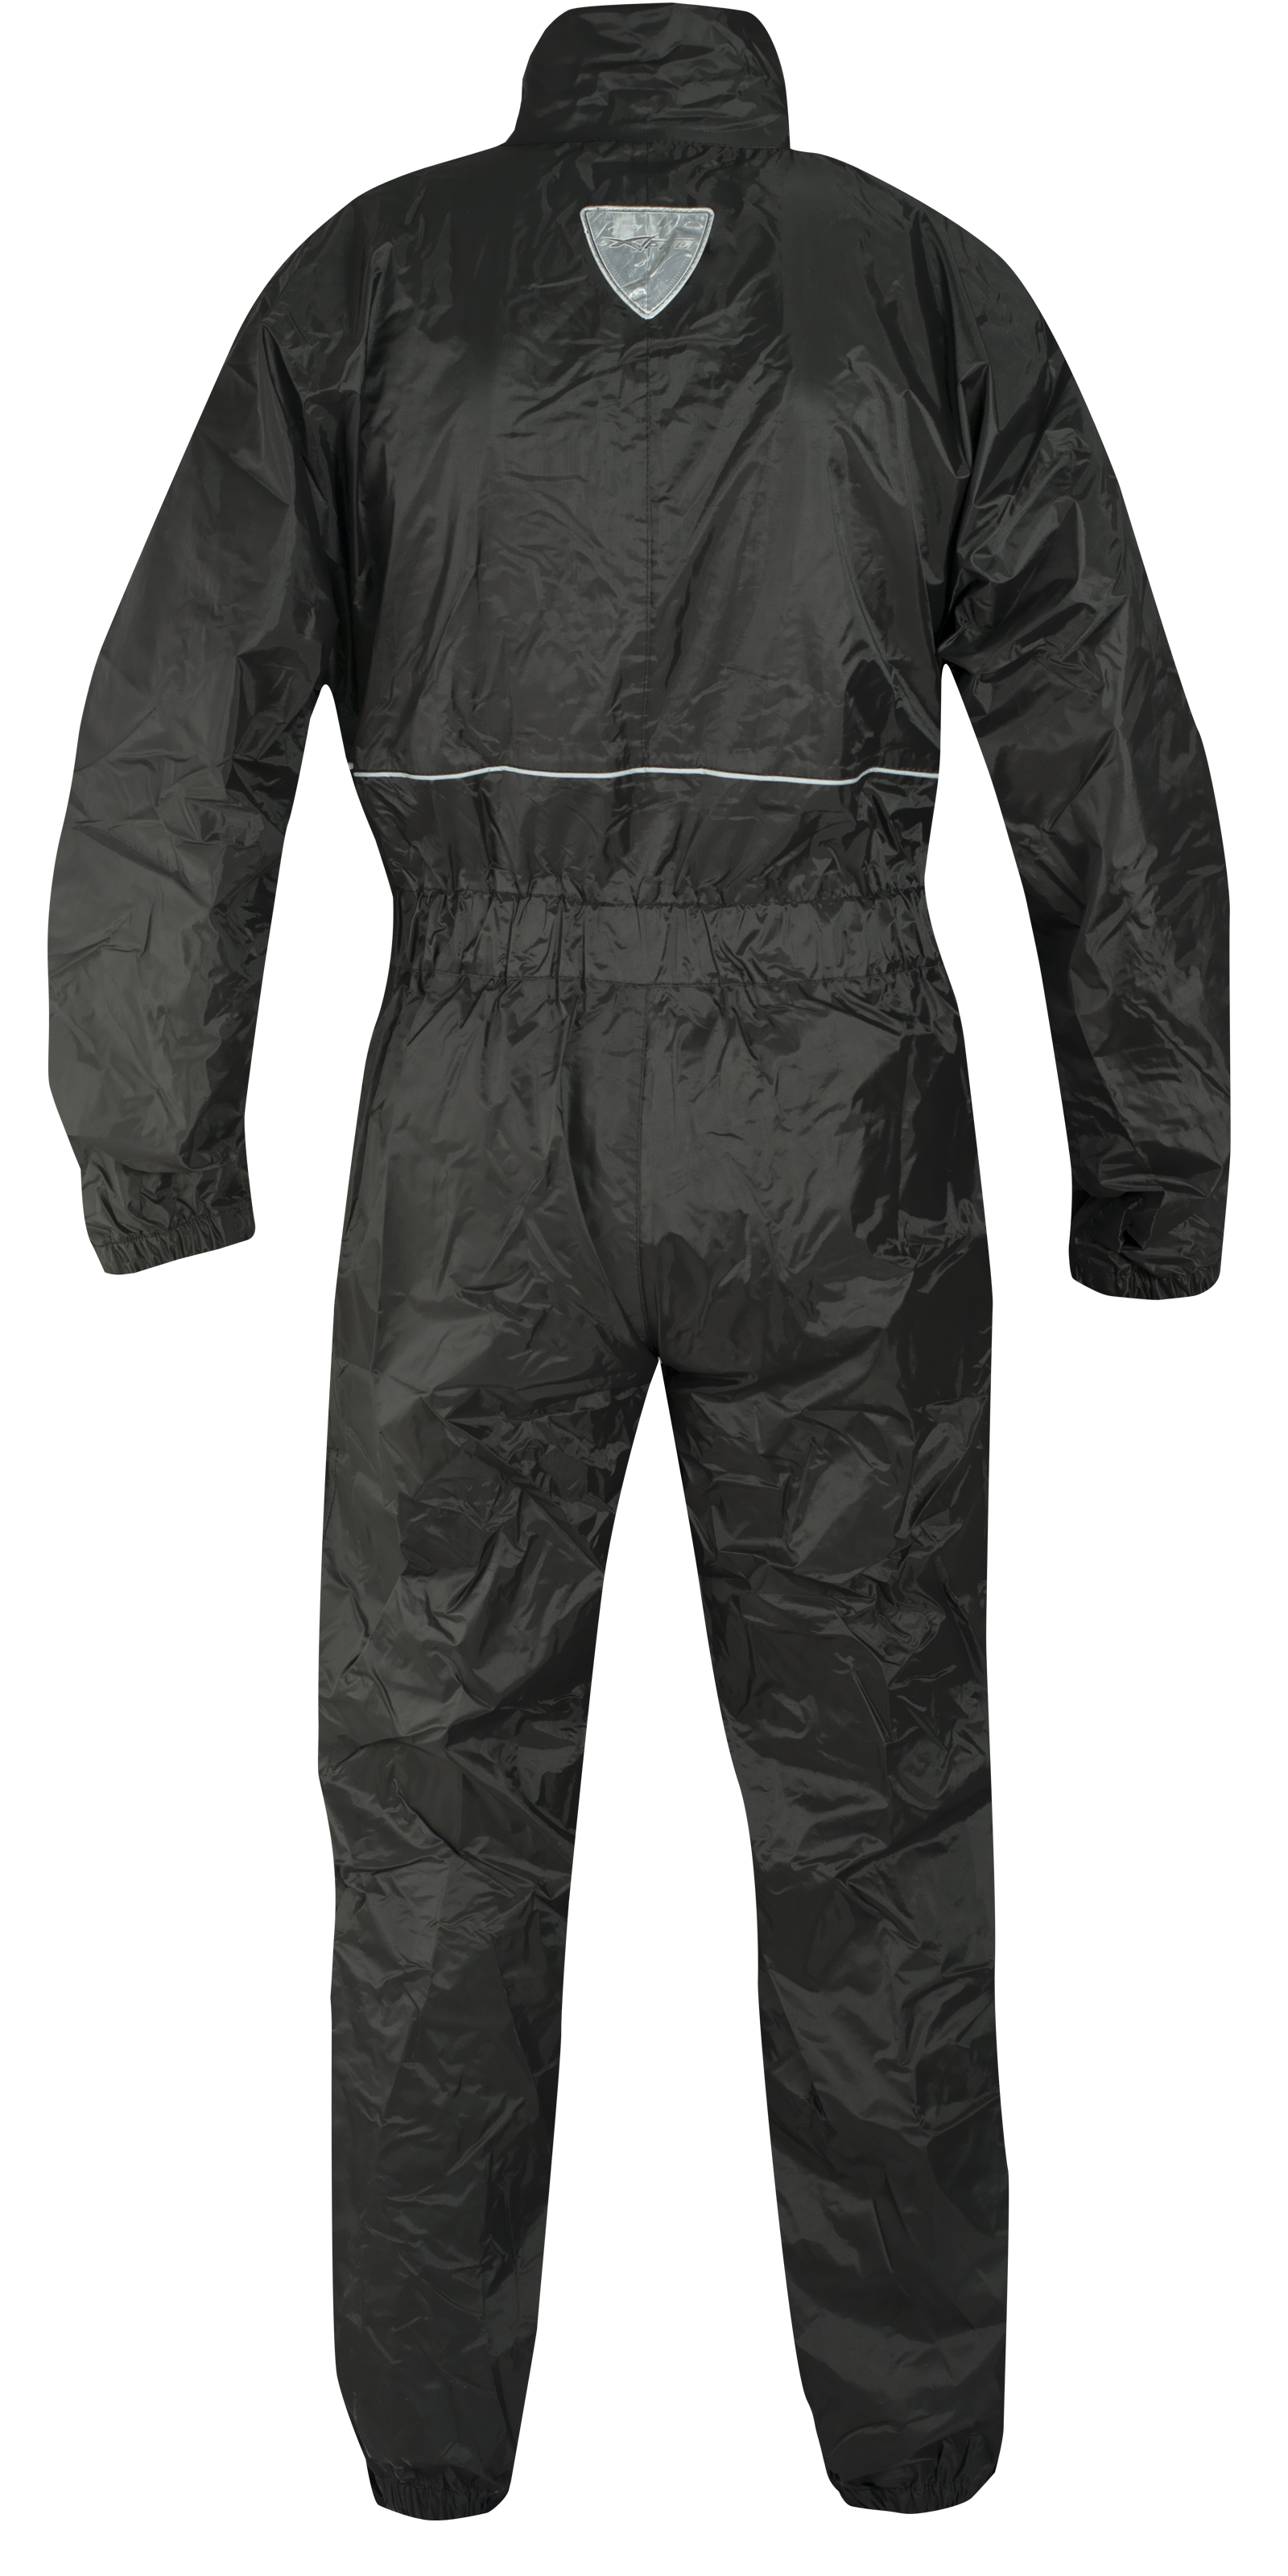 Entire-jumpsuit-Anti-Rain-Water-impermeablie-Foldable-Pouch-Motorcycle-Scooter thumbnail 6